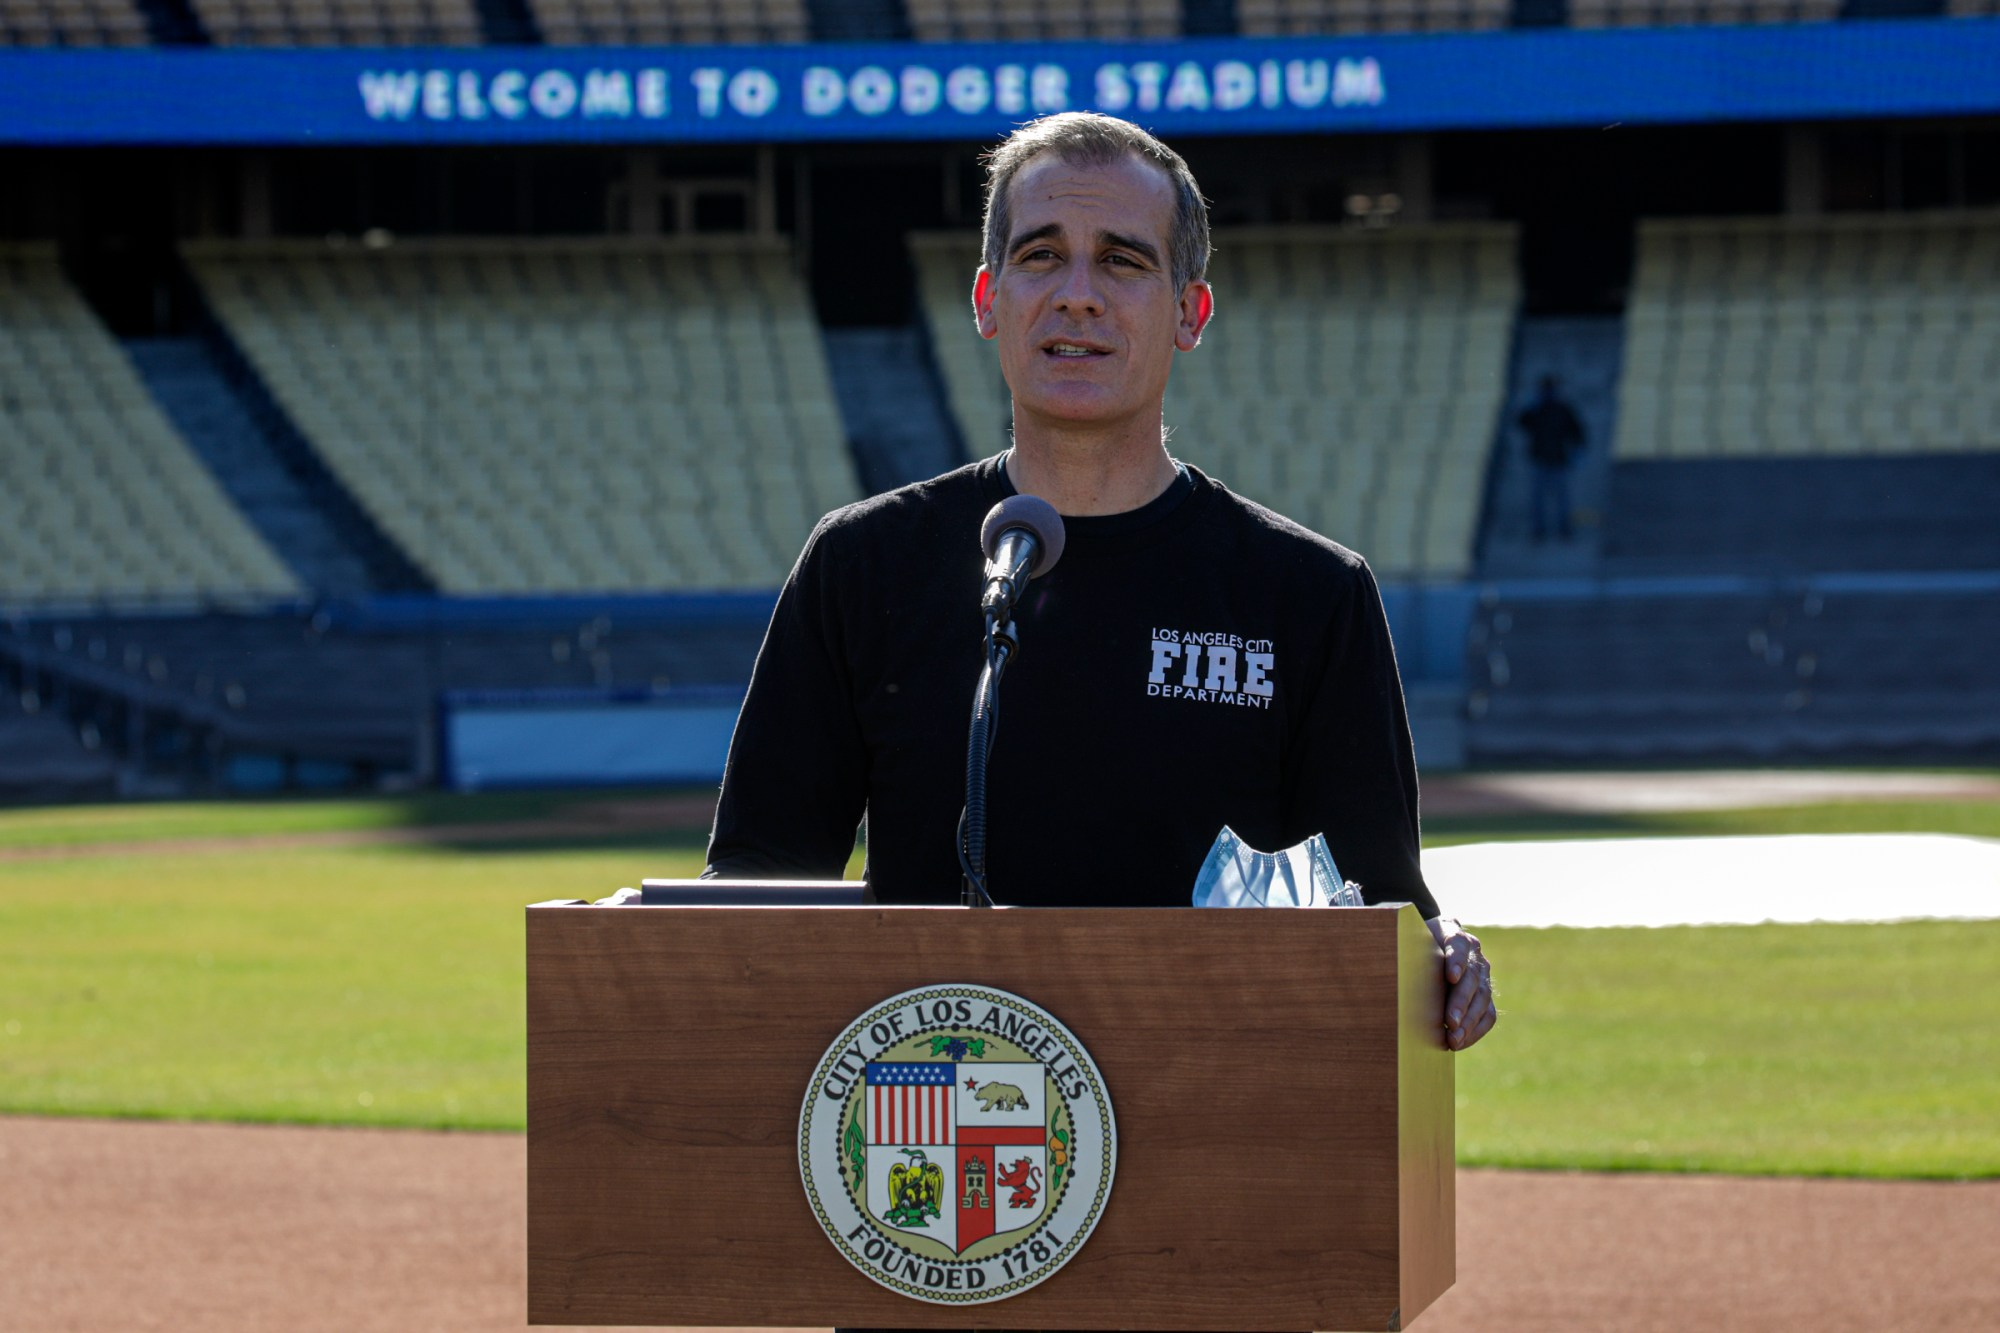 Los Angeles Mayor Eric Garcetti addresses a press conference held at the launch of a mass COVID-19 vaccination site at Dodger Stadium on Jan. 15, 2021. (Irfan Khan / AFP / Getty Images)